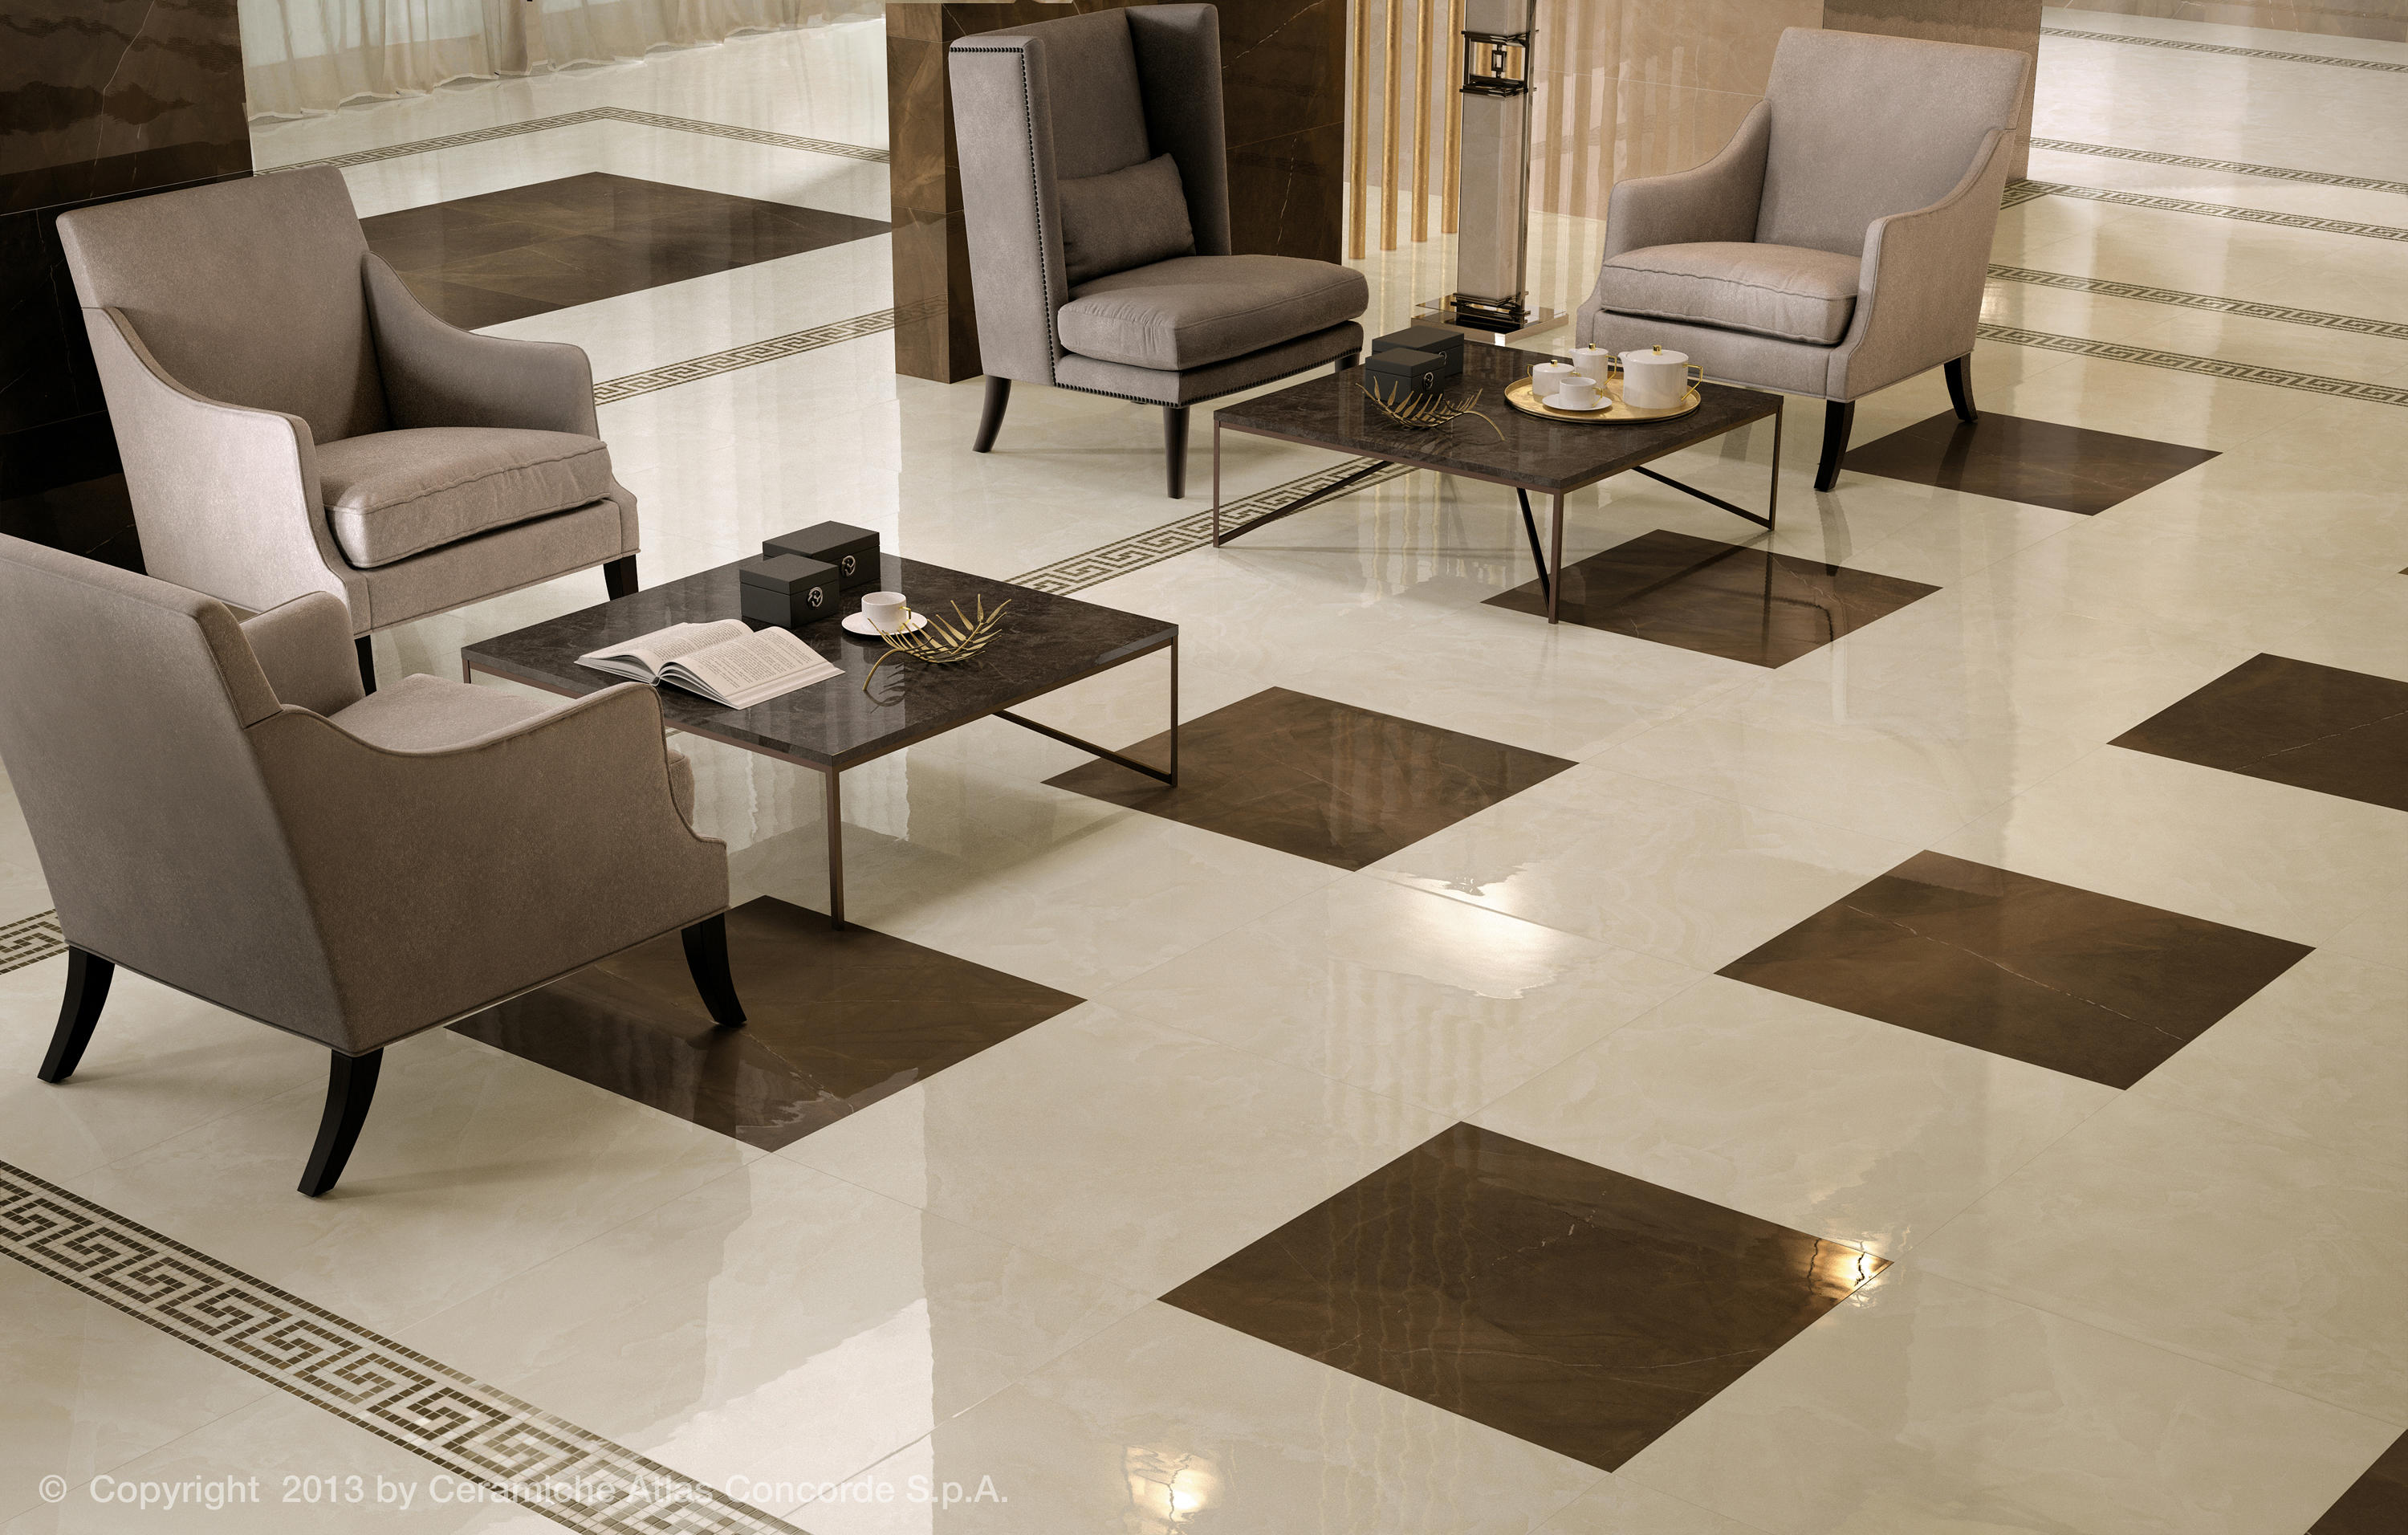 Floor Tiles Design For Small House Marvel Floor Gray Stone Ceramic Tiles From Atlas